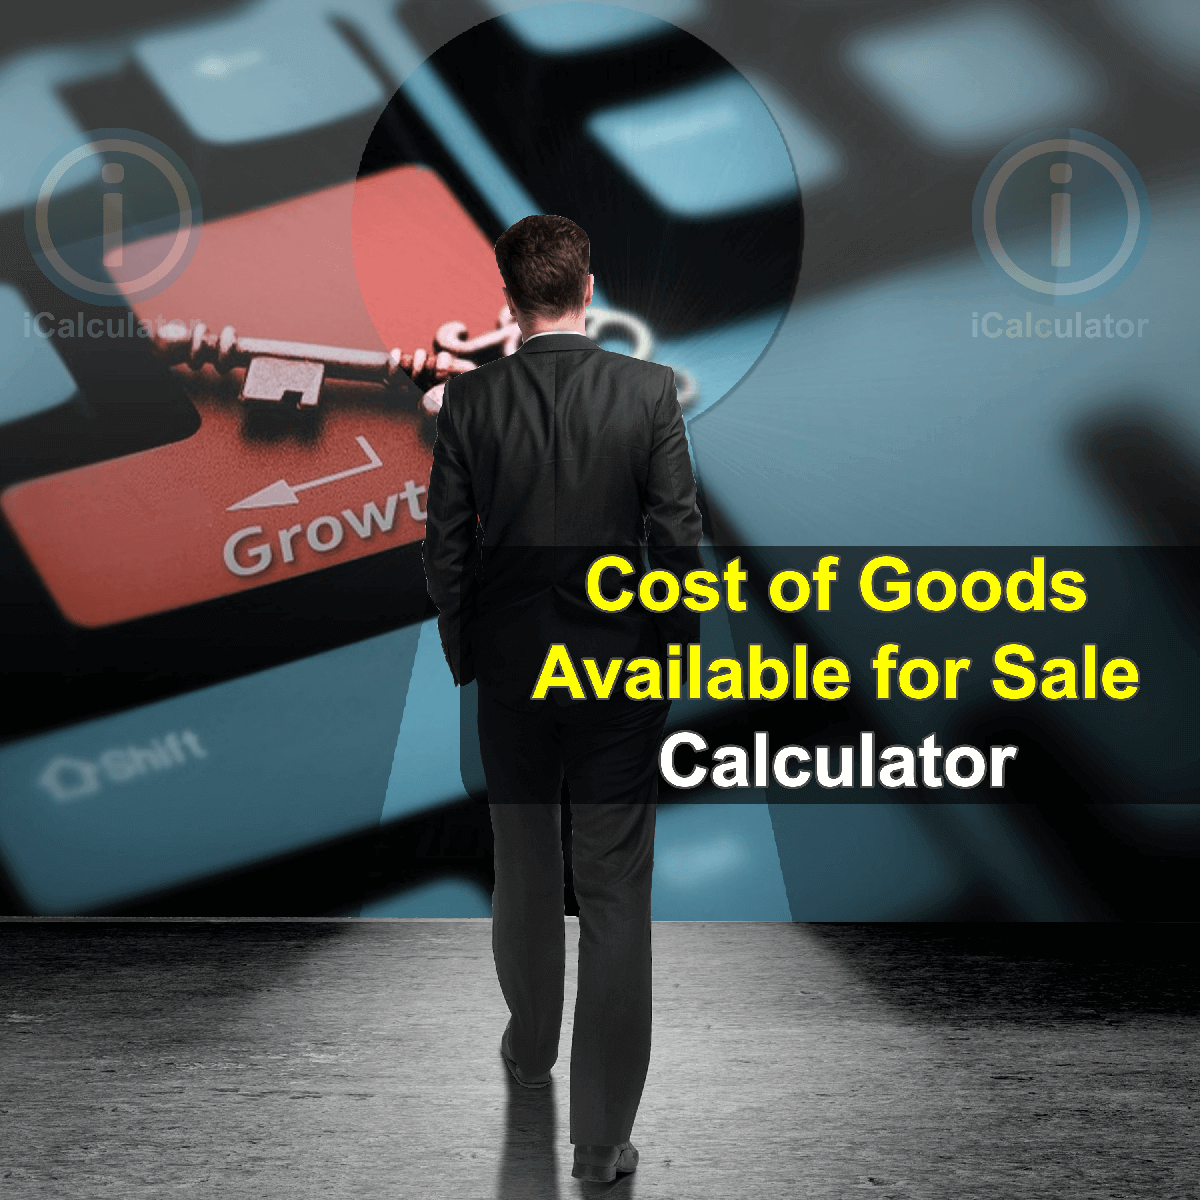 Cost of Goods Available For Sale Calculator. This image provides details of how to calculate Cost of Goods Available For Sale using a calculator, pen and paper. By using the Cost of Goods Available For Sale formula, the Cost of Goods Available For Sale Calculator provides a true calculation of the price paid for the inventory that is readily available for customers to purchase.